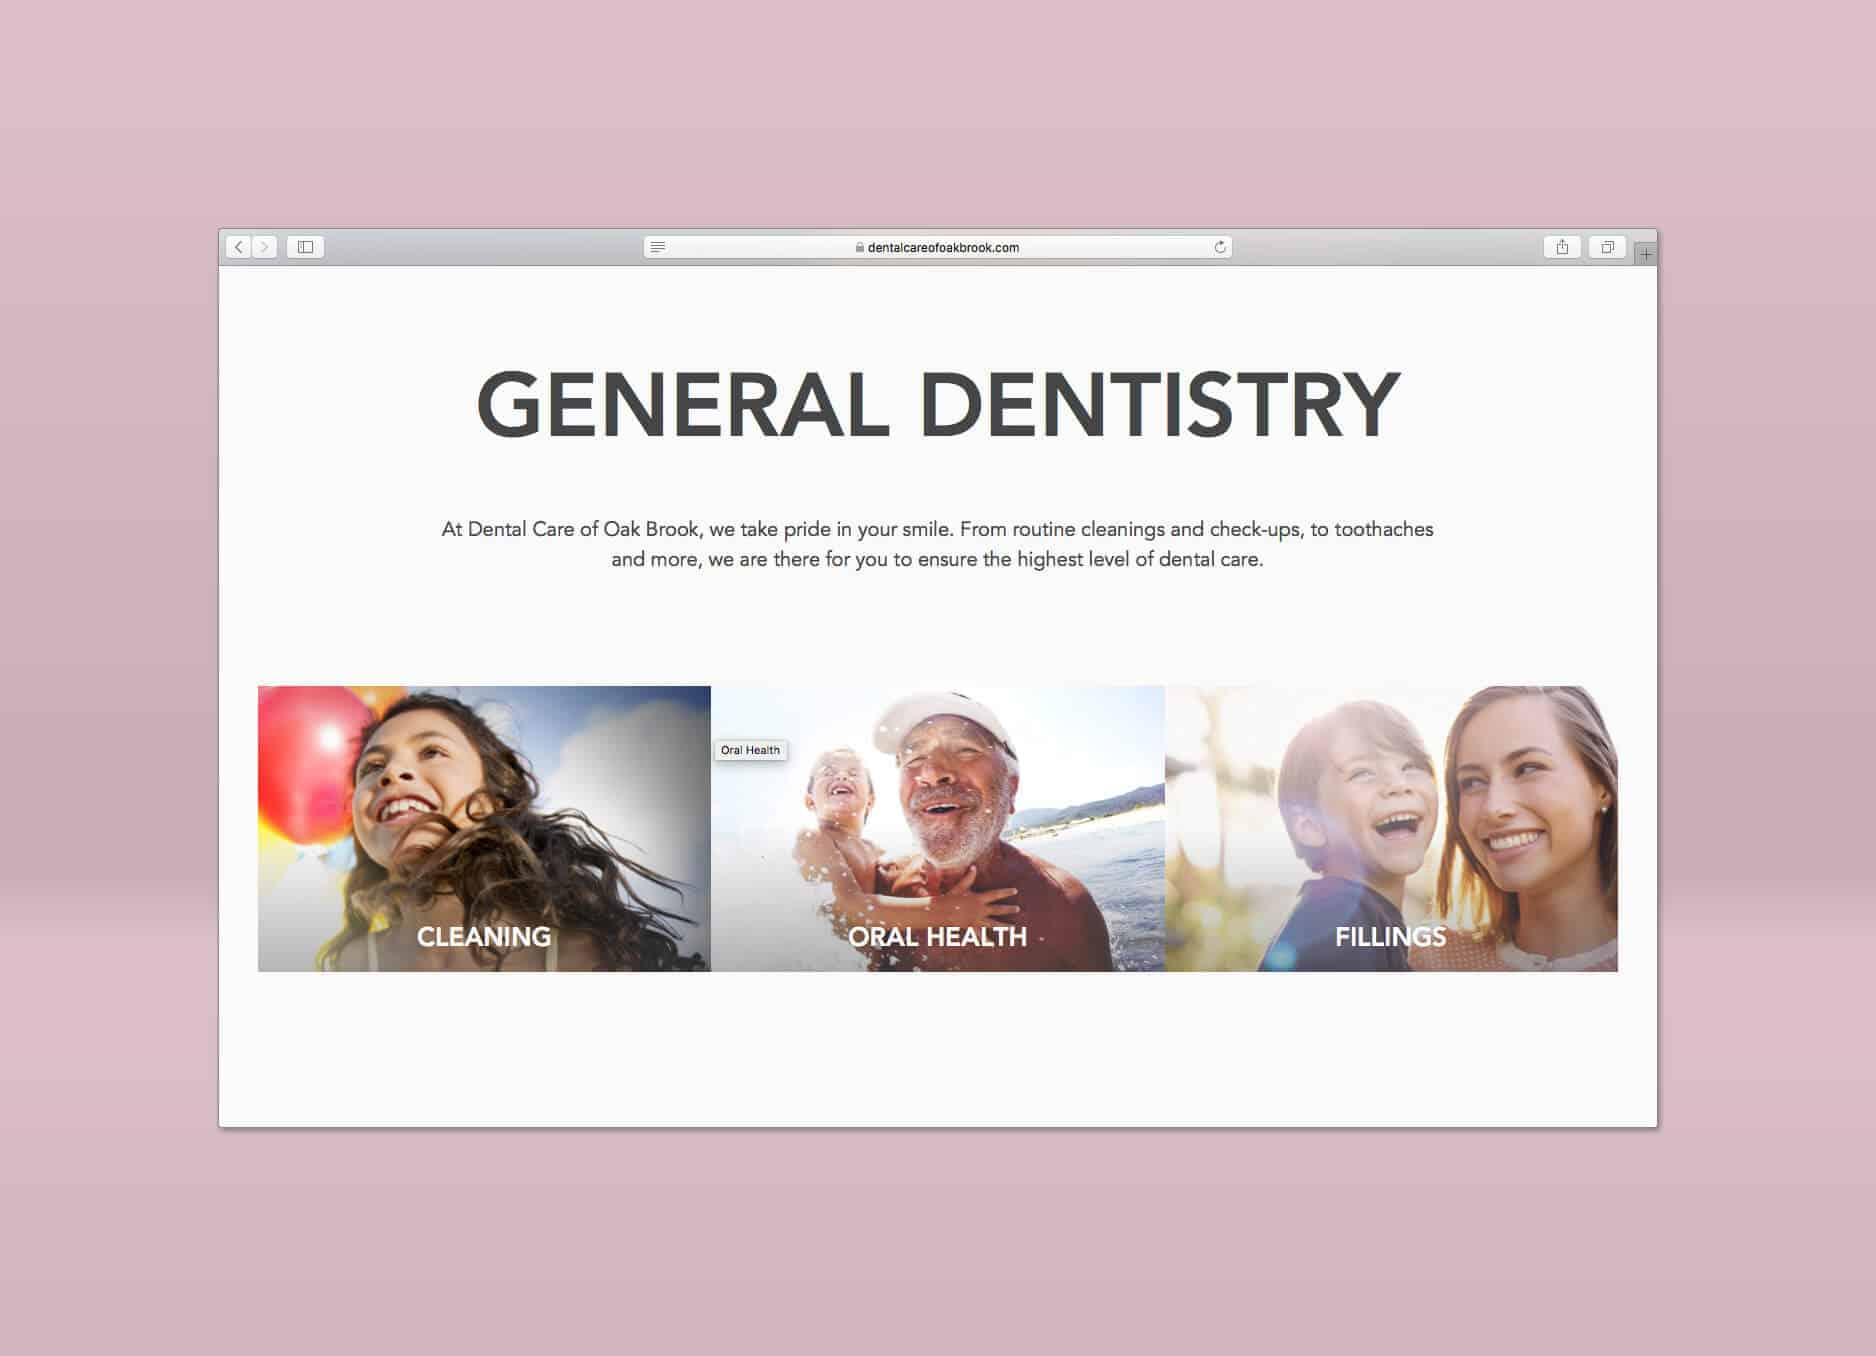 dental care of oakbrook homepage